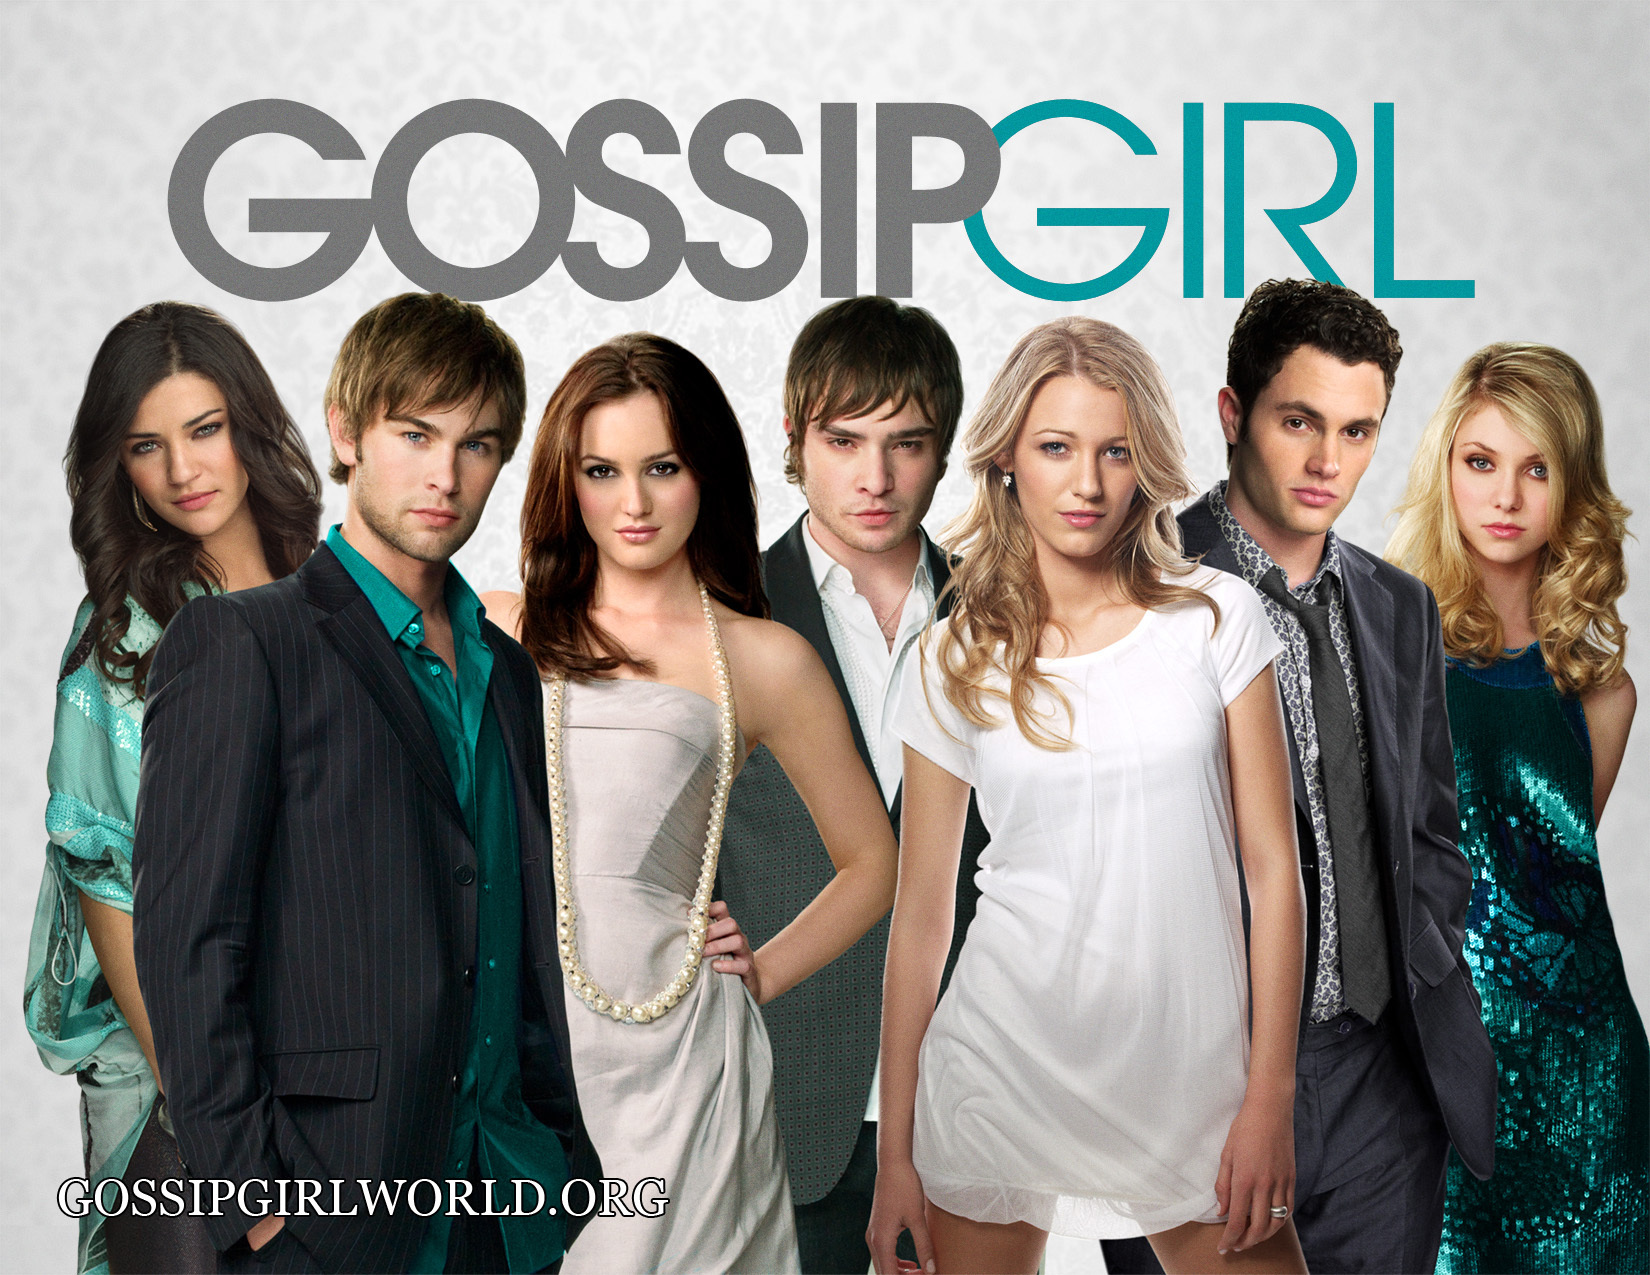 http://moviesoothsayer.files.wordpress.com/2010/07/gossip_girl_poster1.jpg